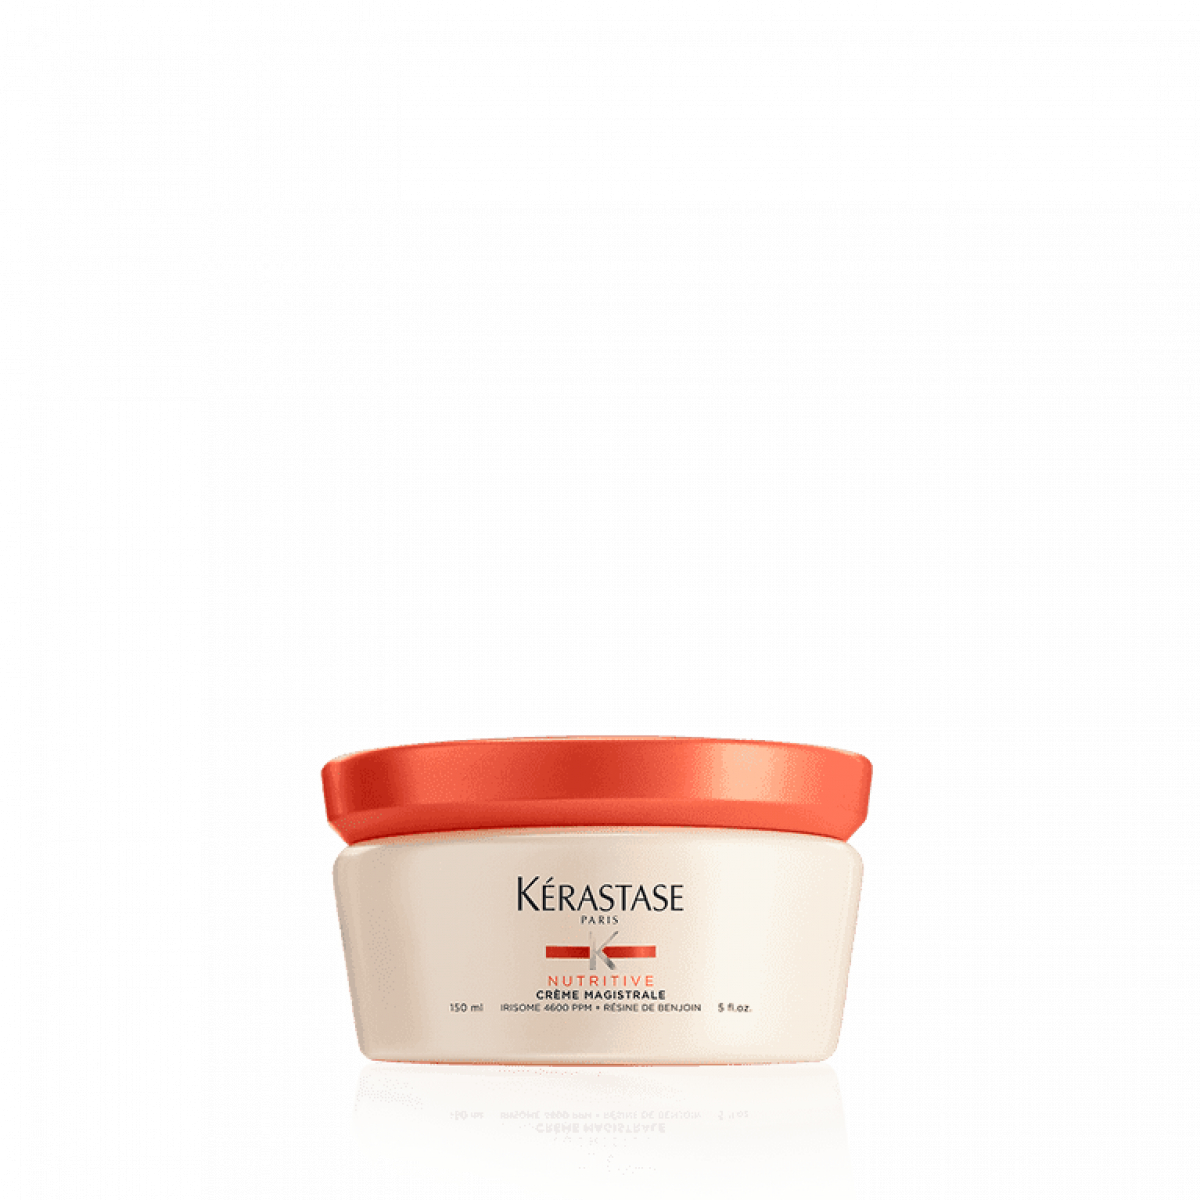 Nutritive Creme Magistrale Krem 150 ml